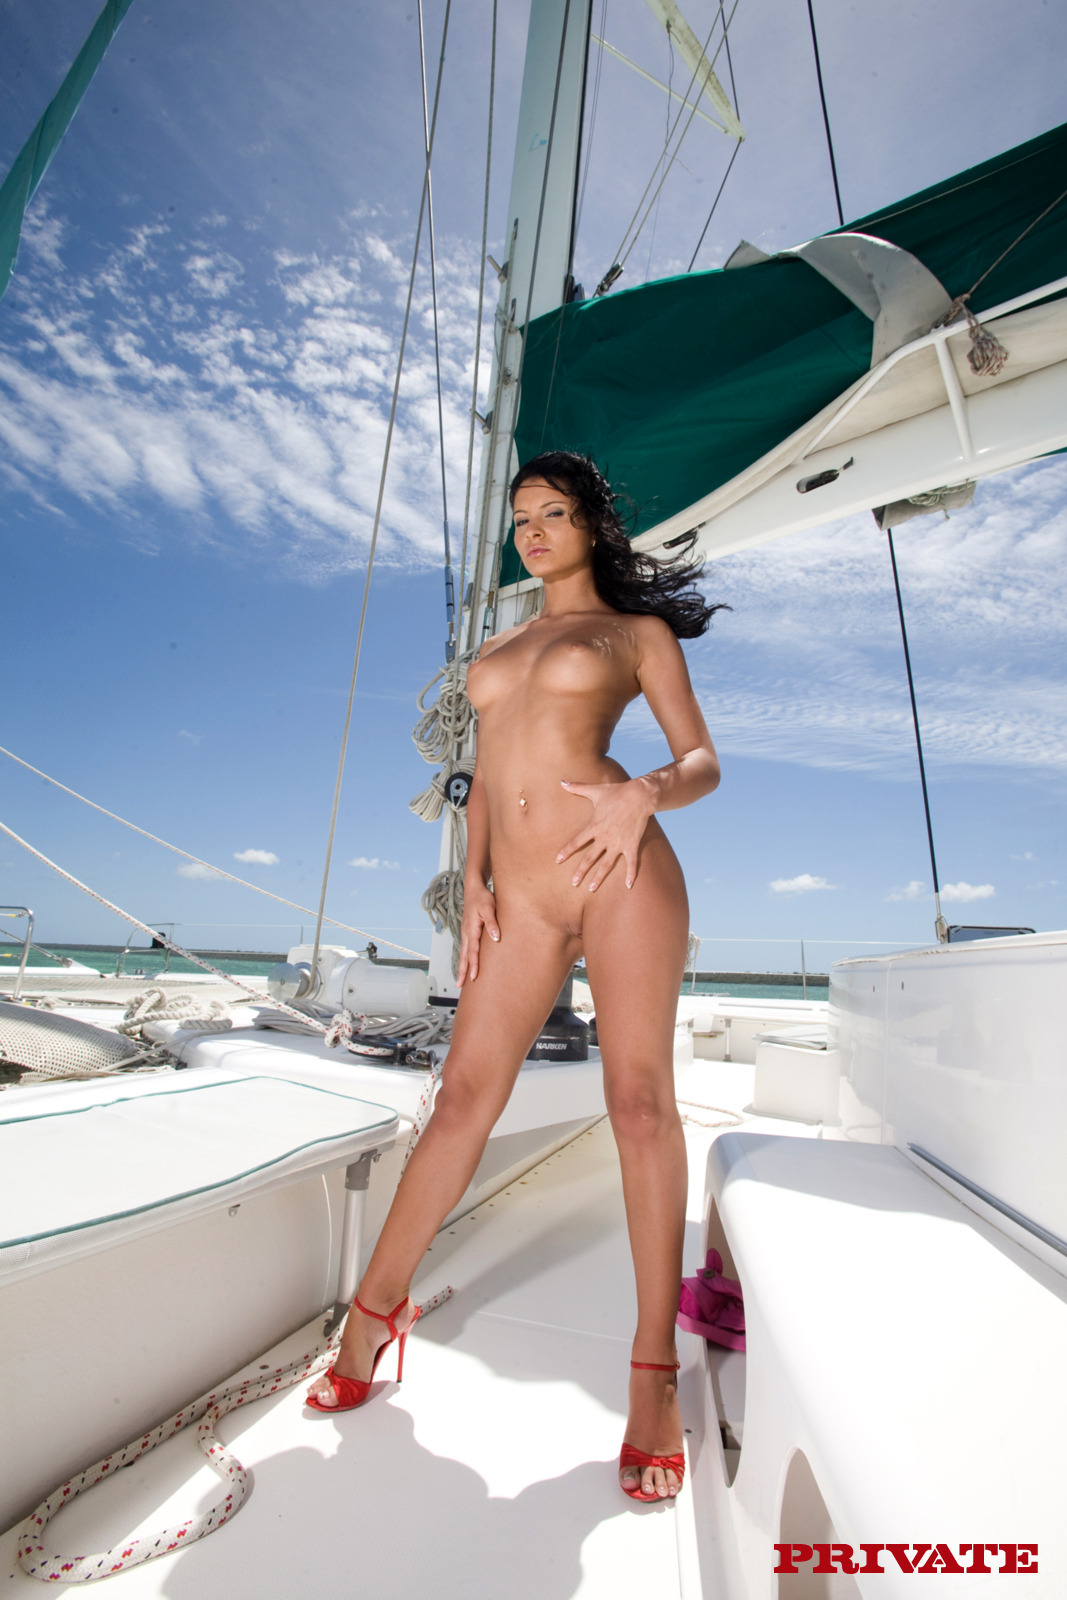 cdnhw galleries private Lucy Belle Boroka Does The Caribbean 8